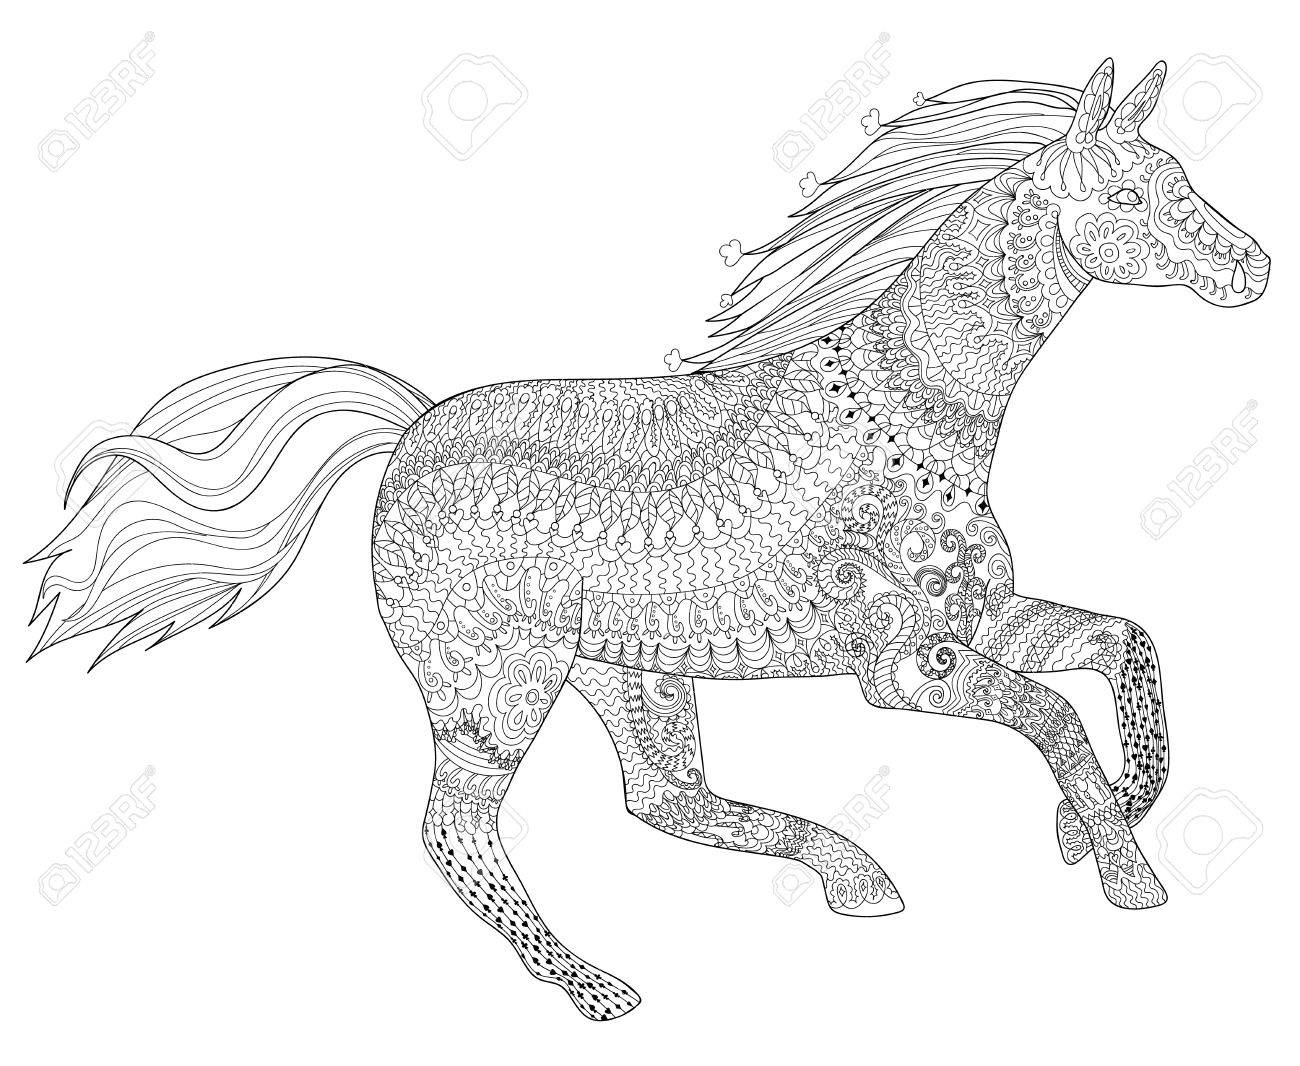 adult coloring page for antistress art therapy running horse in zentangle style template for - Running Horse Coloring Pages